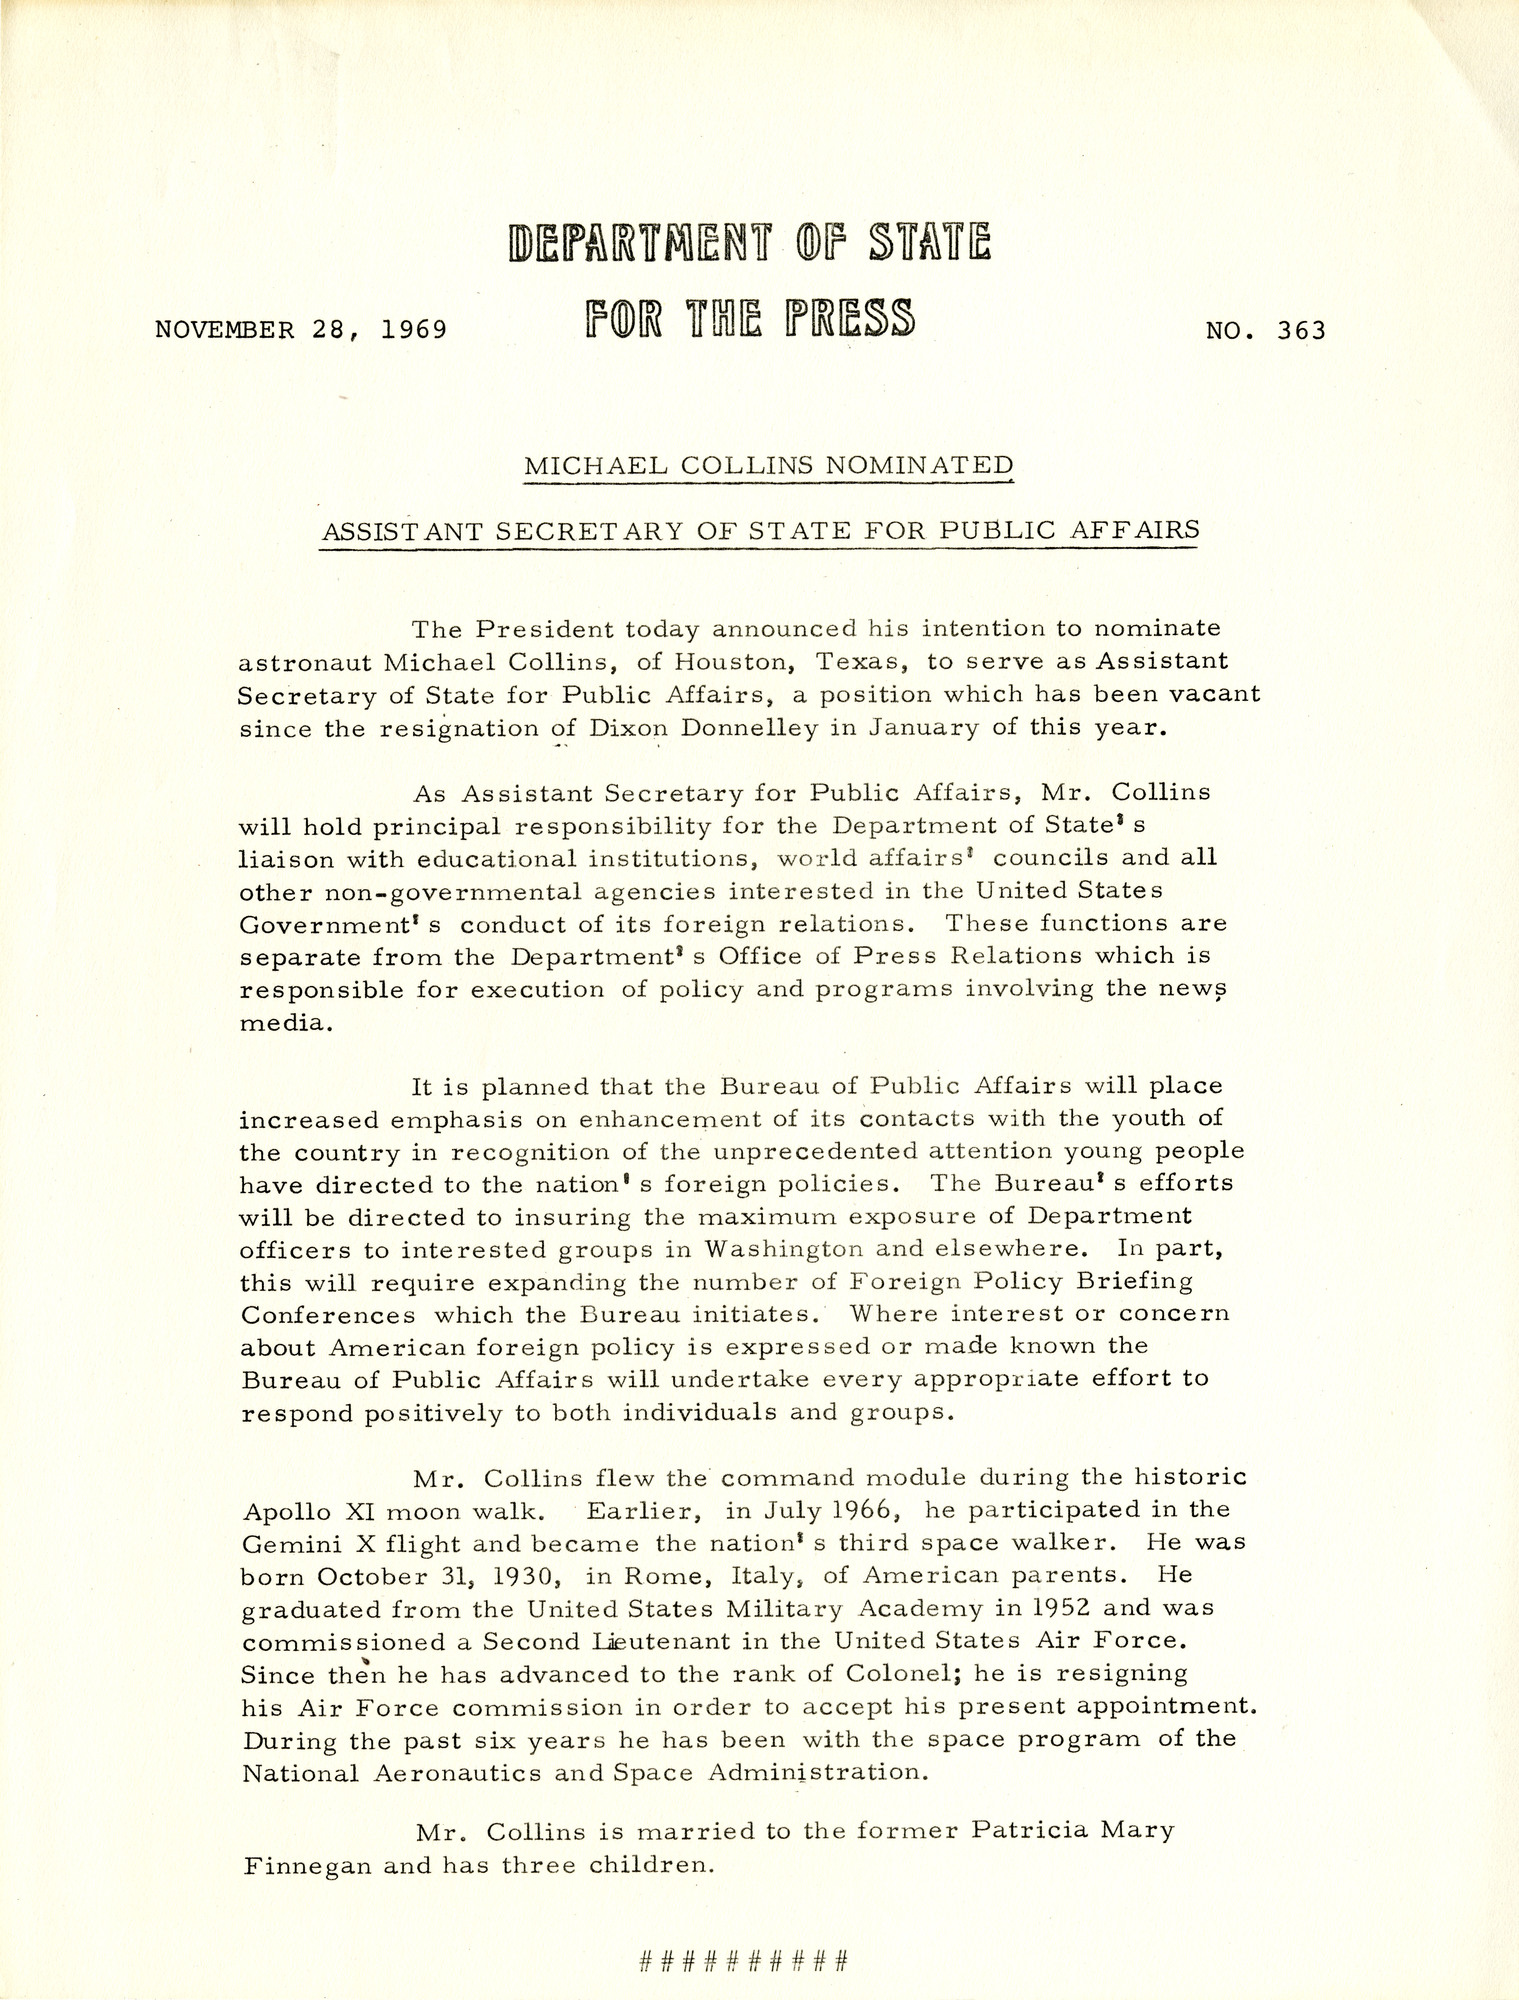 http://spec.lib.vt.edu/pickup/Omeka_upload/Ms1989-029_B18_F1_MichaelCollins_PressRelease_1969_1128.jpg